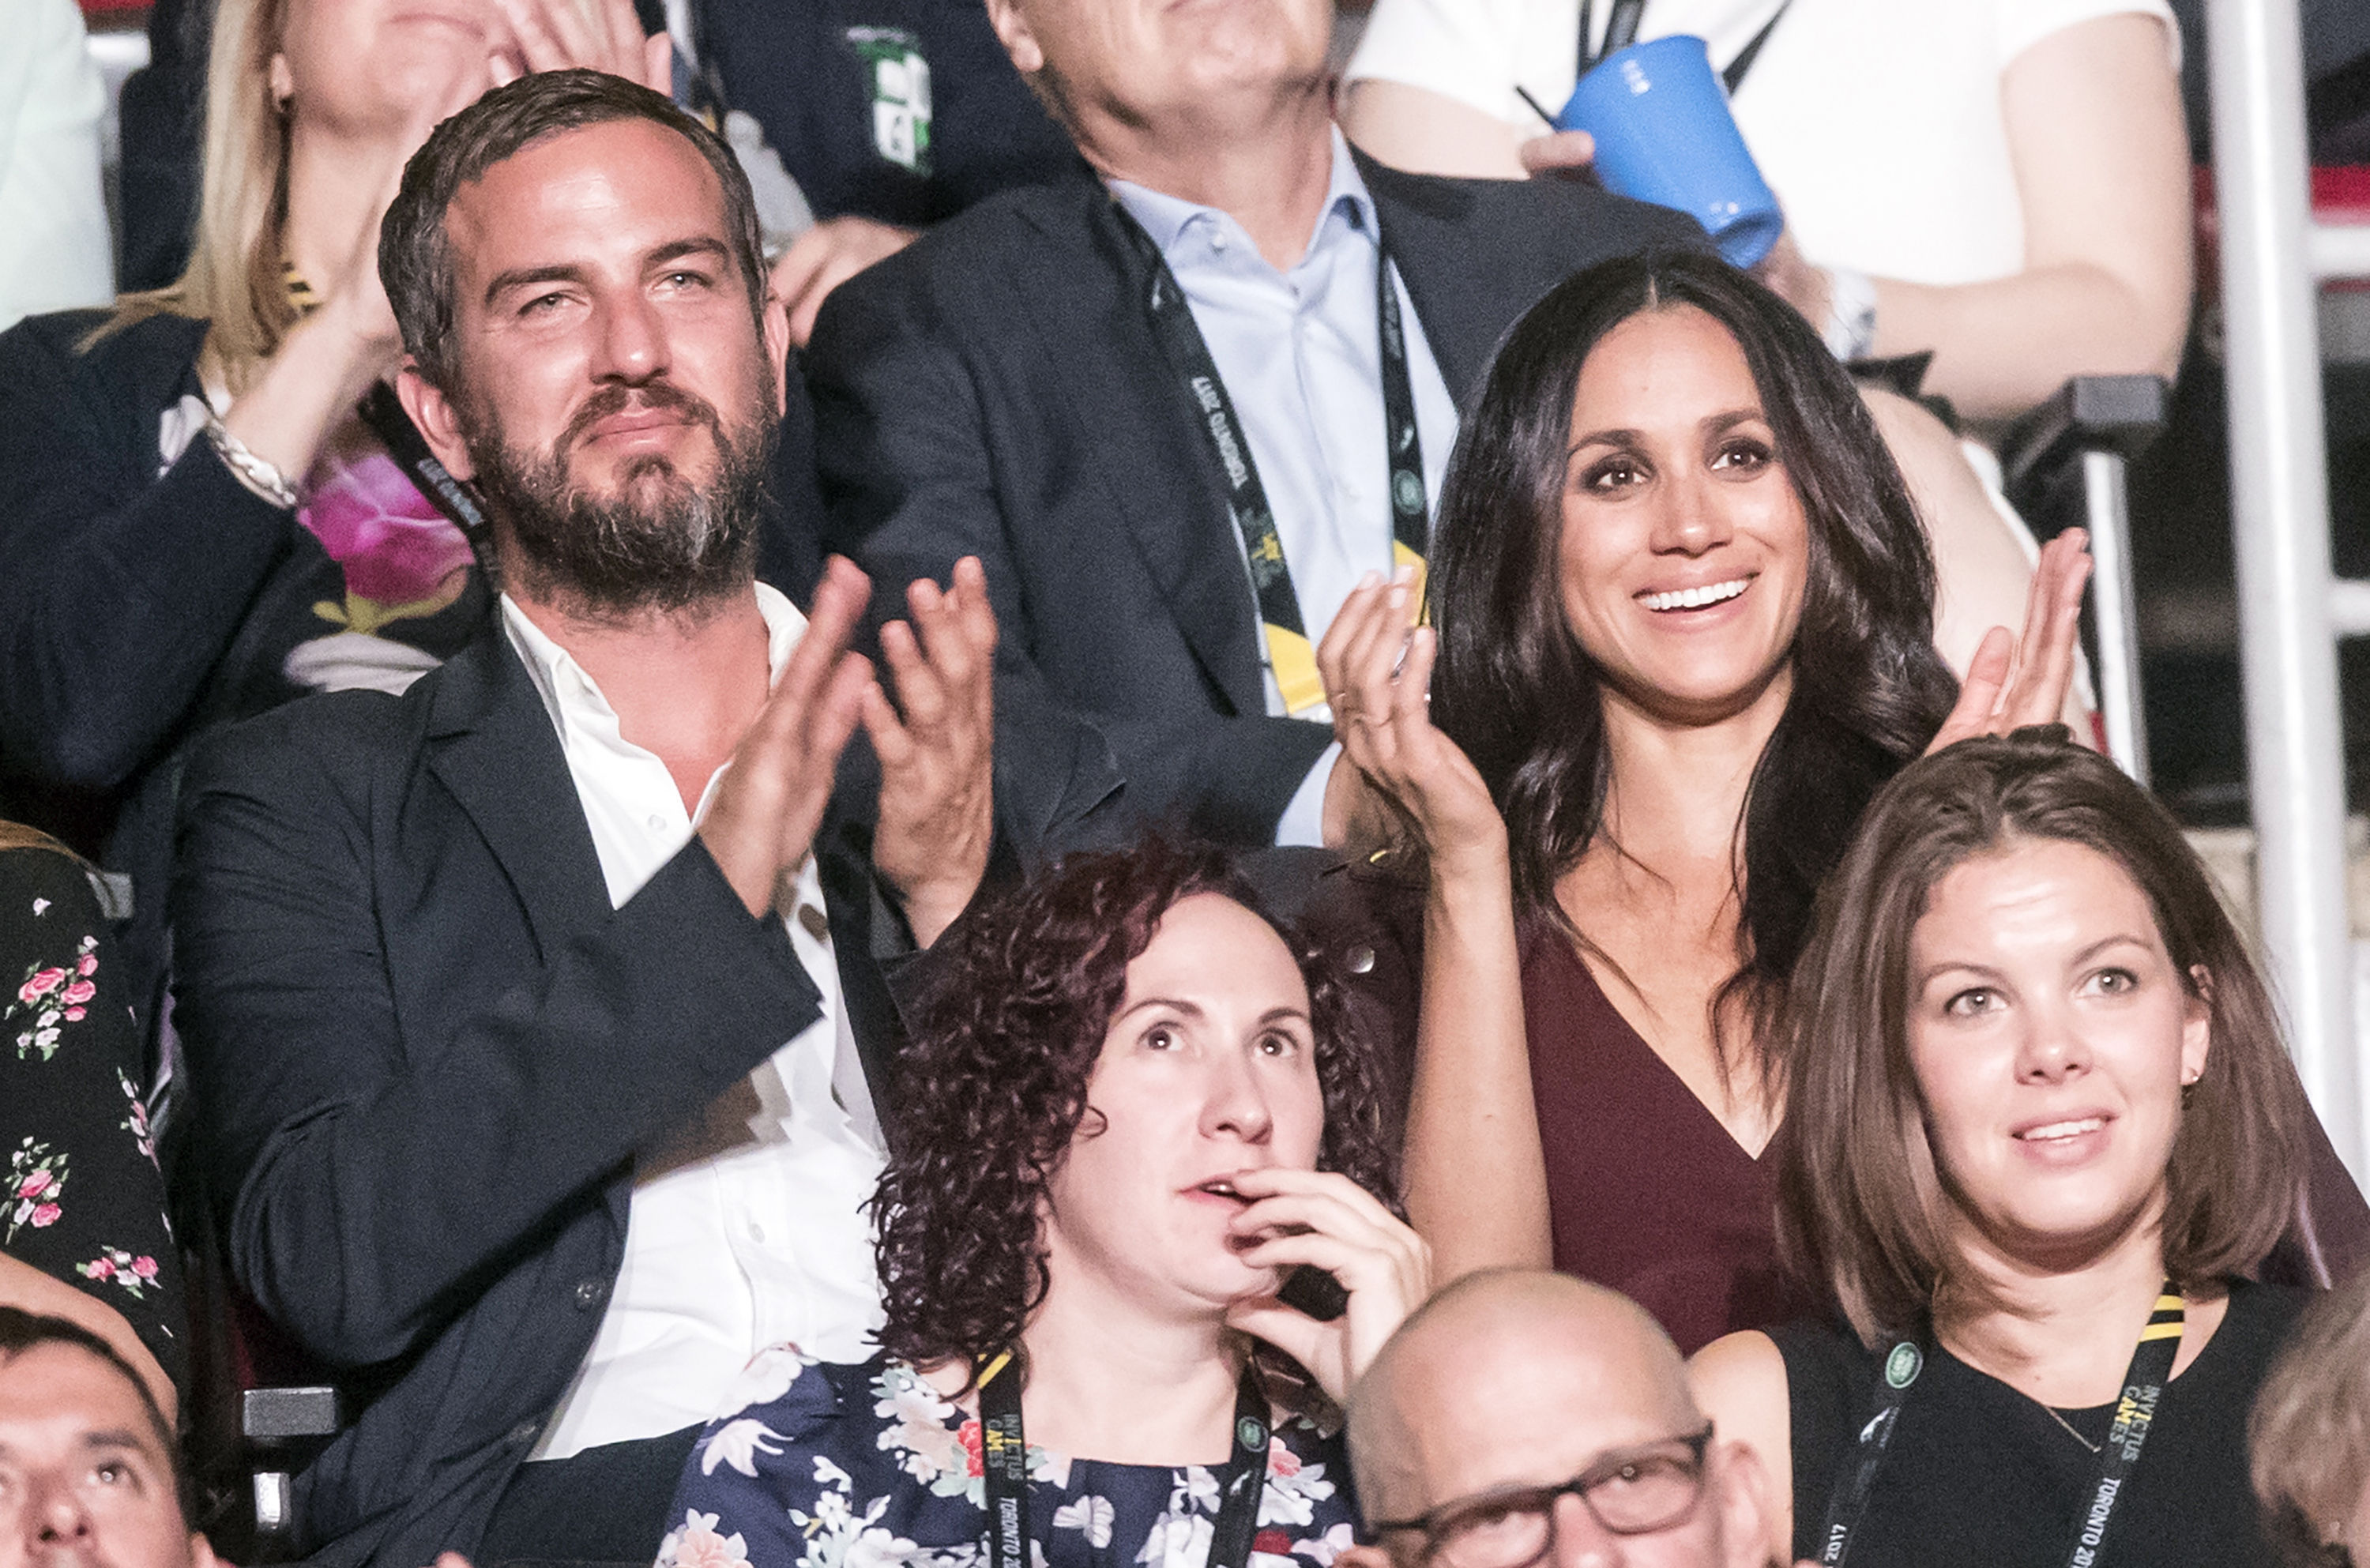 Meghan Markle attends the Opening Ceremony of the 2017 Invictus Games at the Air Canada Centre in Toronto, Canada.